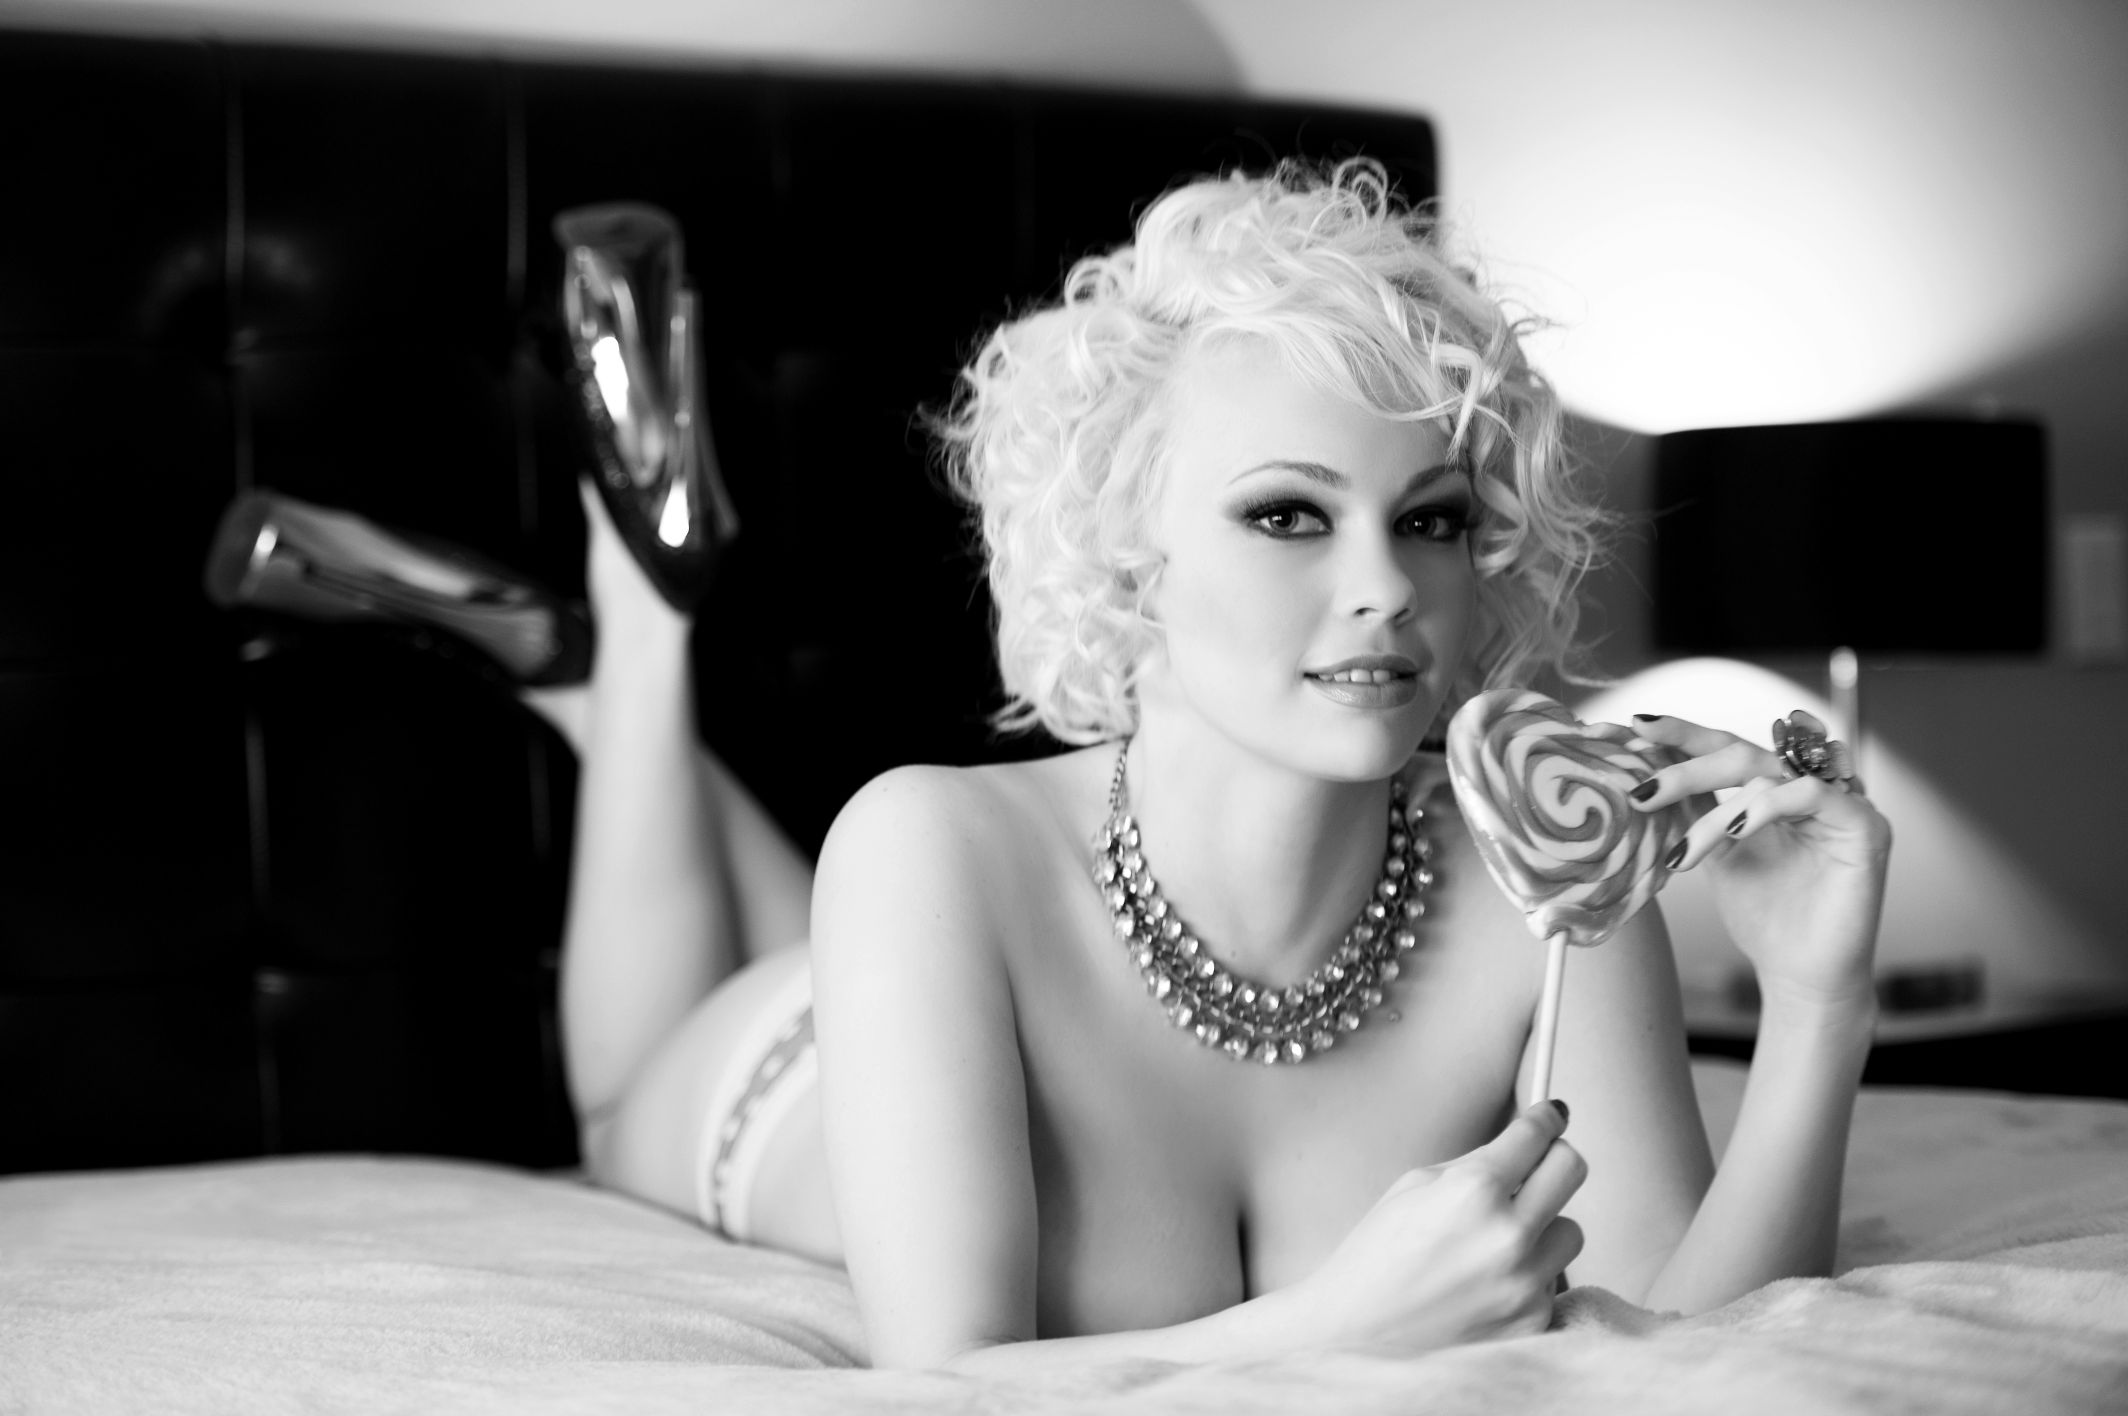 Boudoir photogrpahy sexy woman classic black and white photography 1